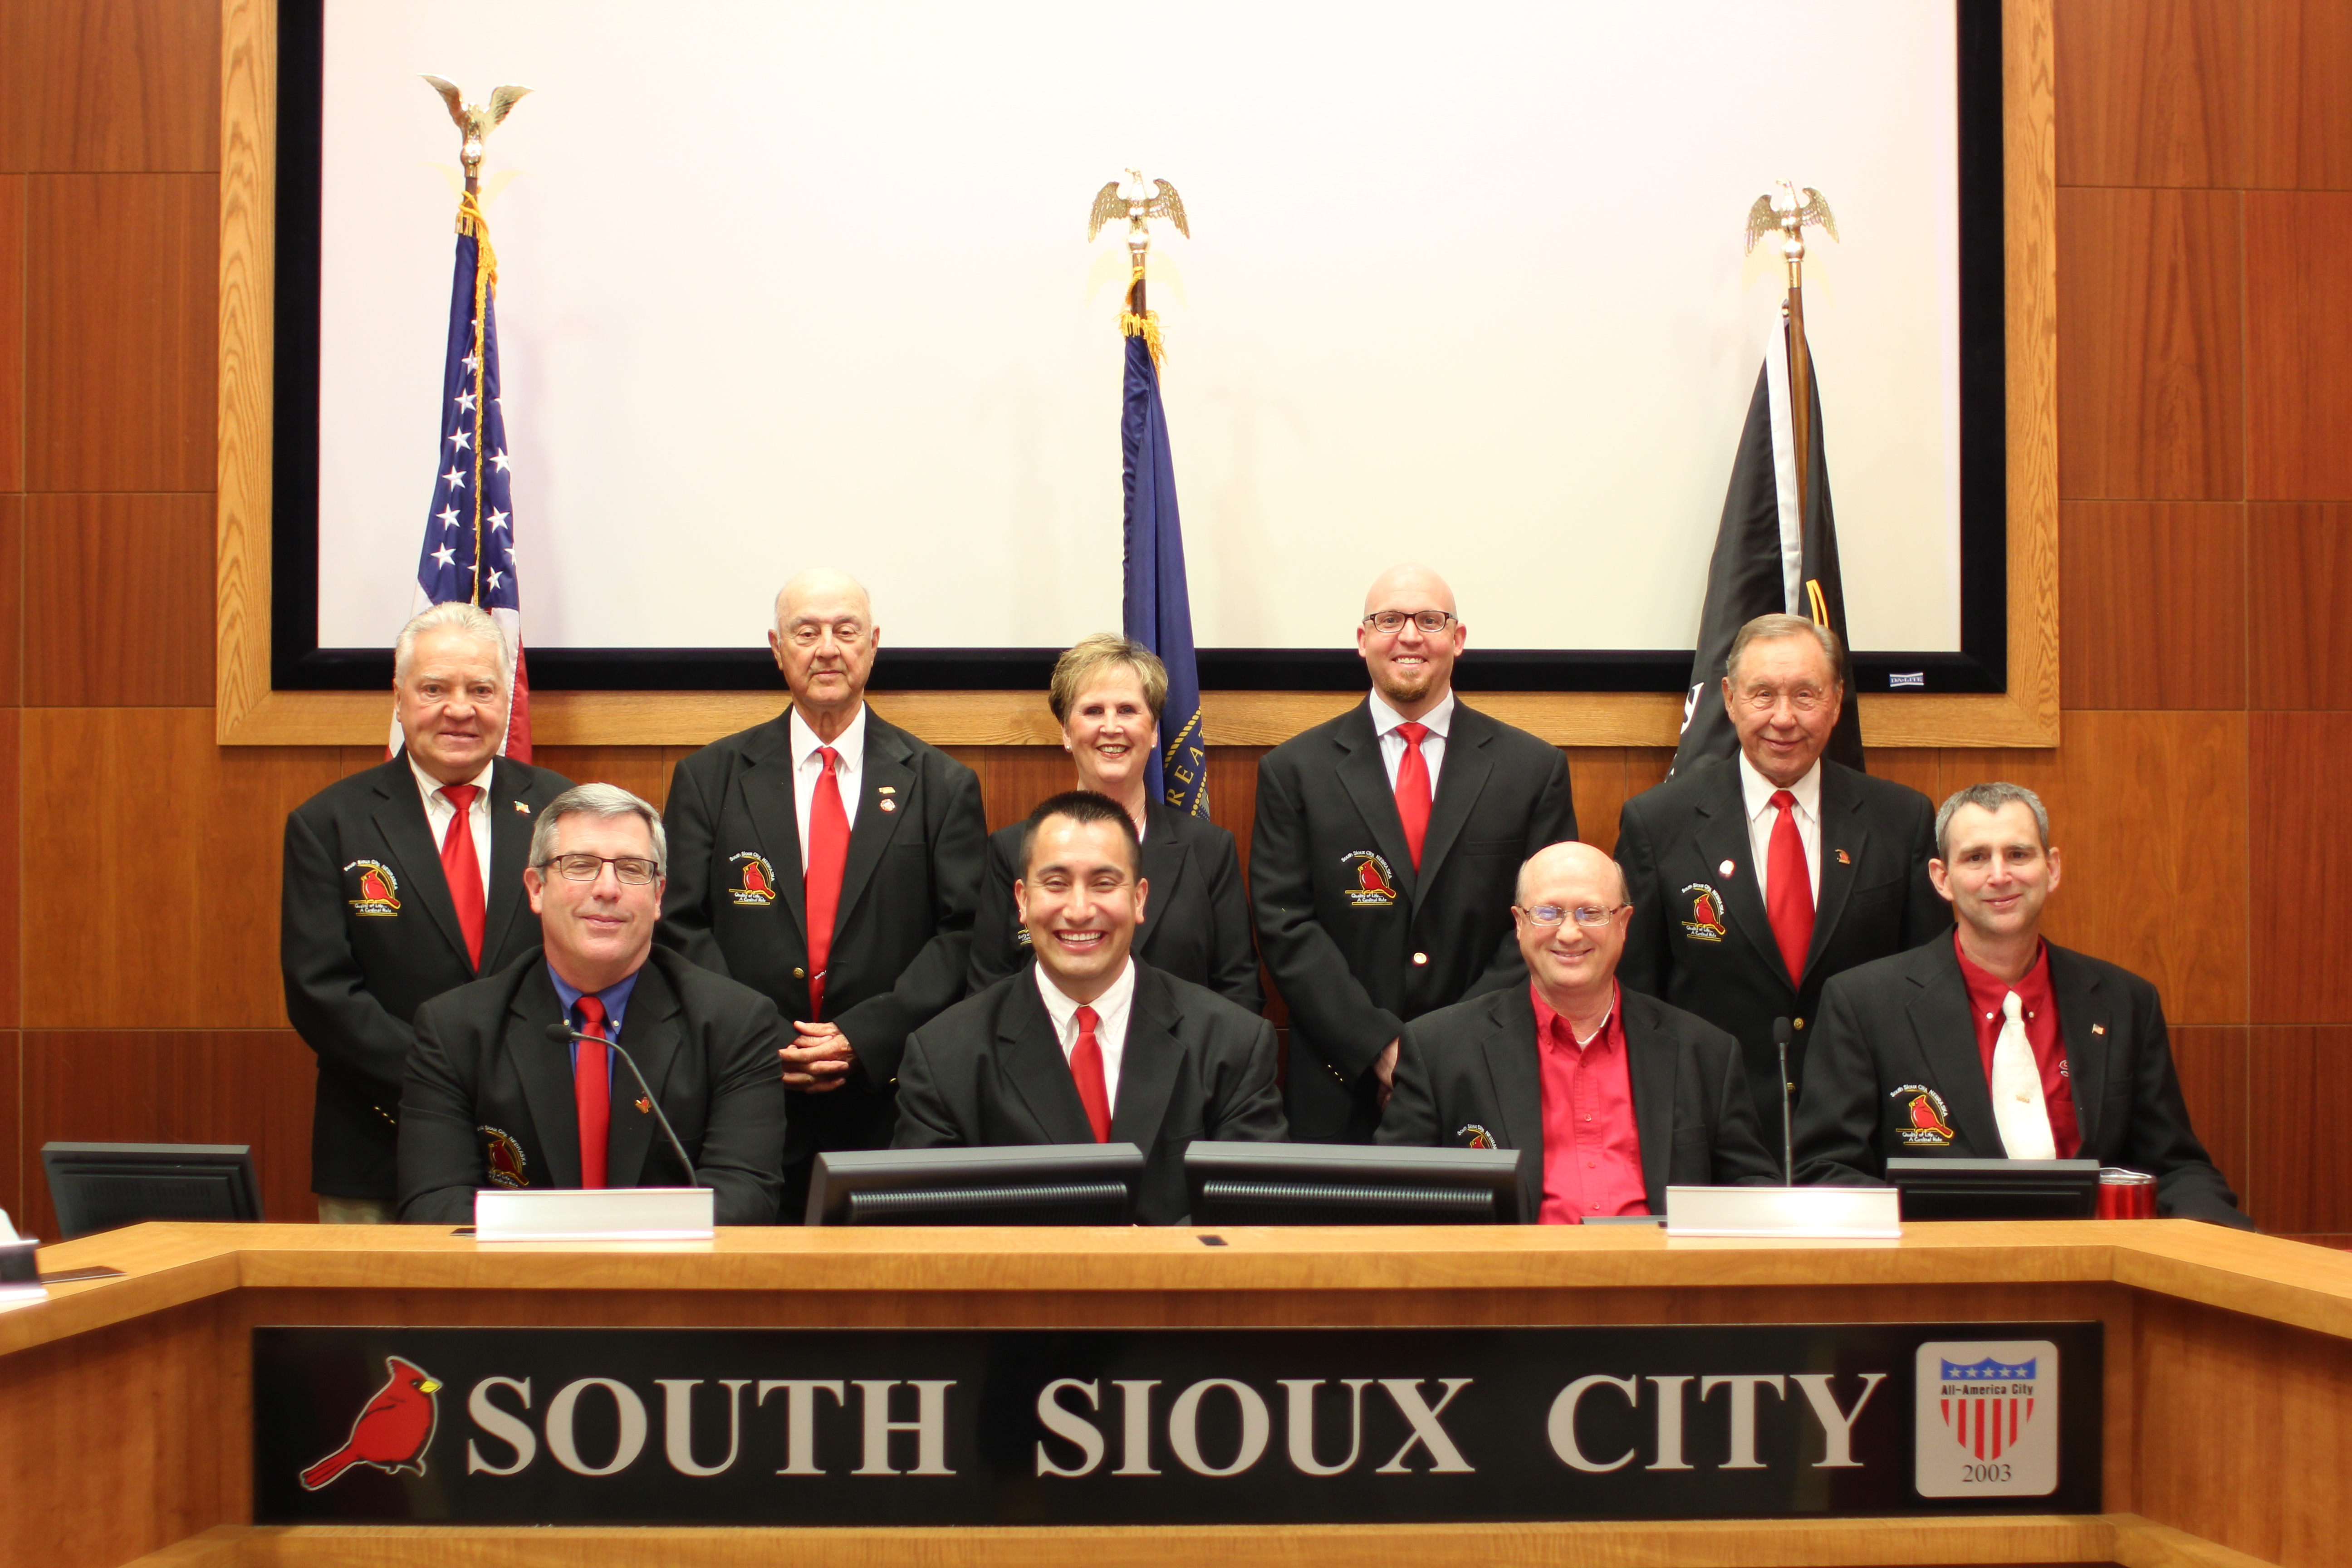 City Council Picture - 2017